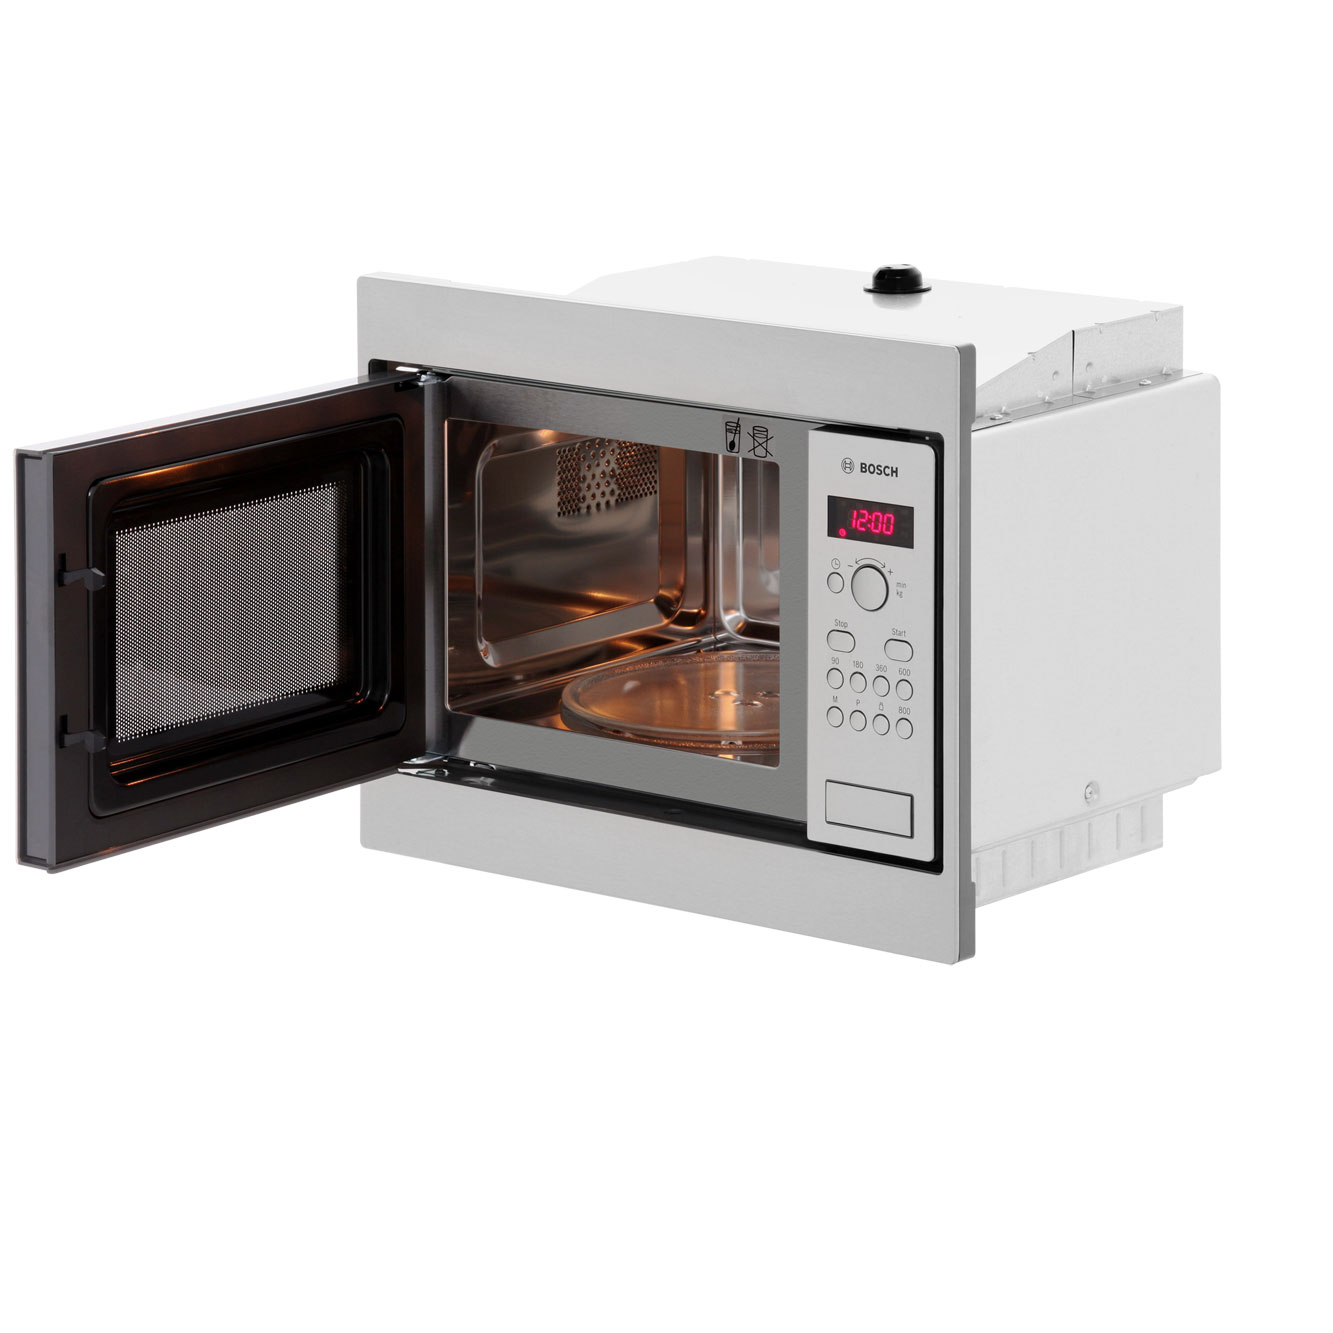 Small built in microwave oven bestmicrowave for Small built in microwave oven